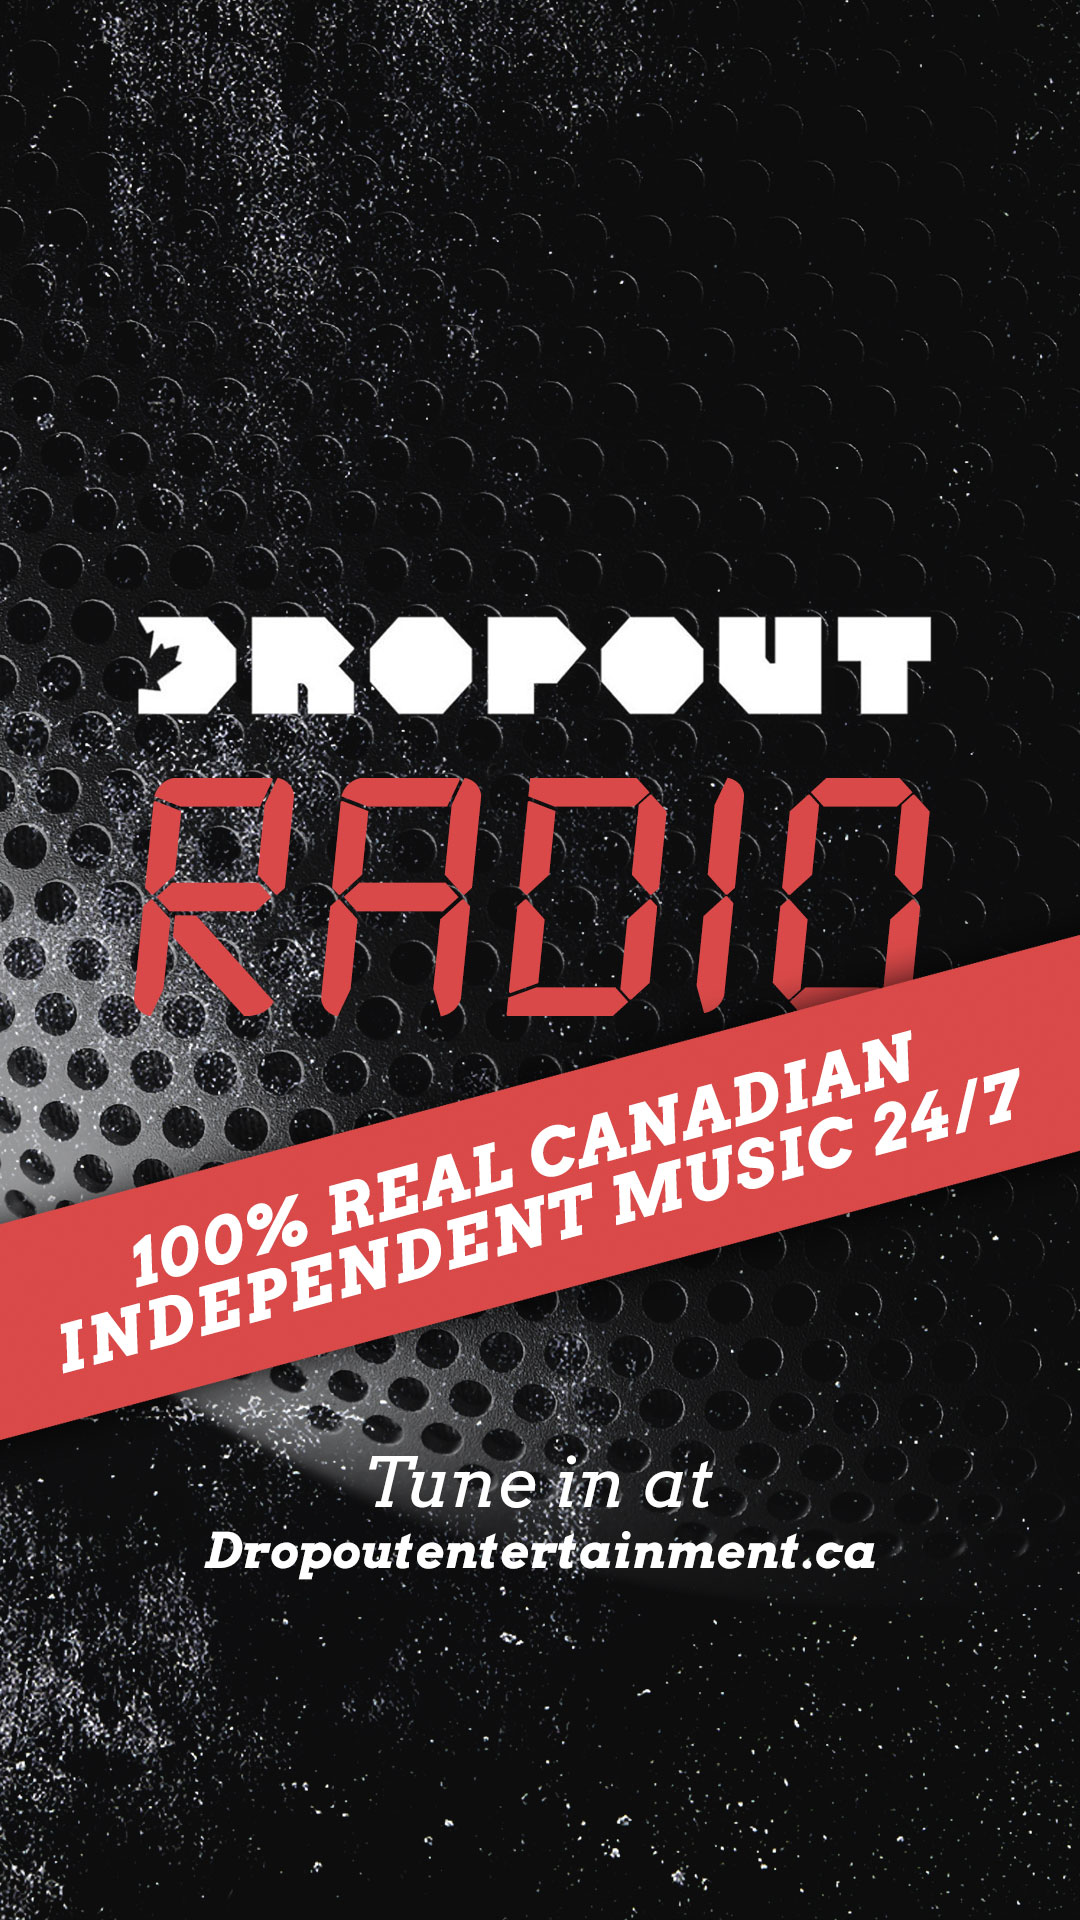 Dropout Radio Tune In Now